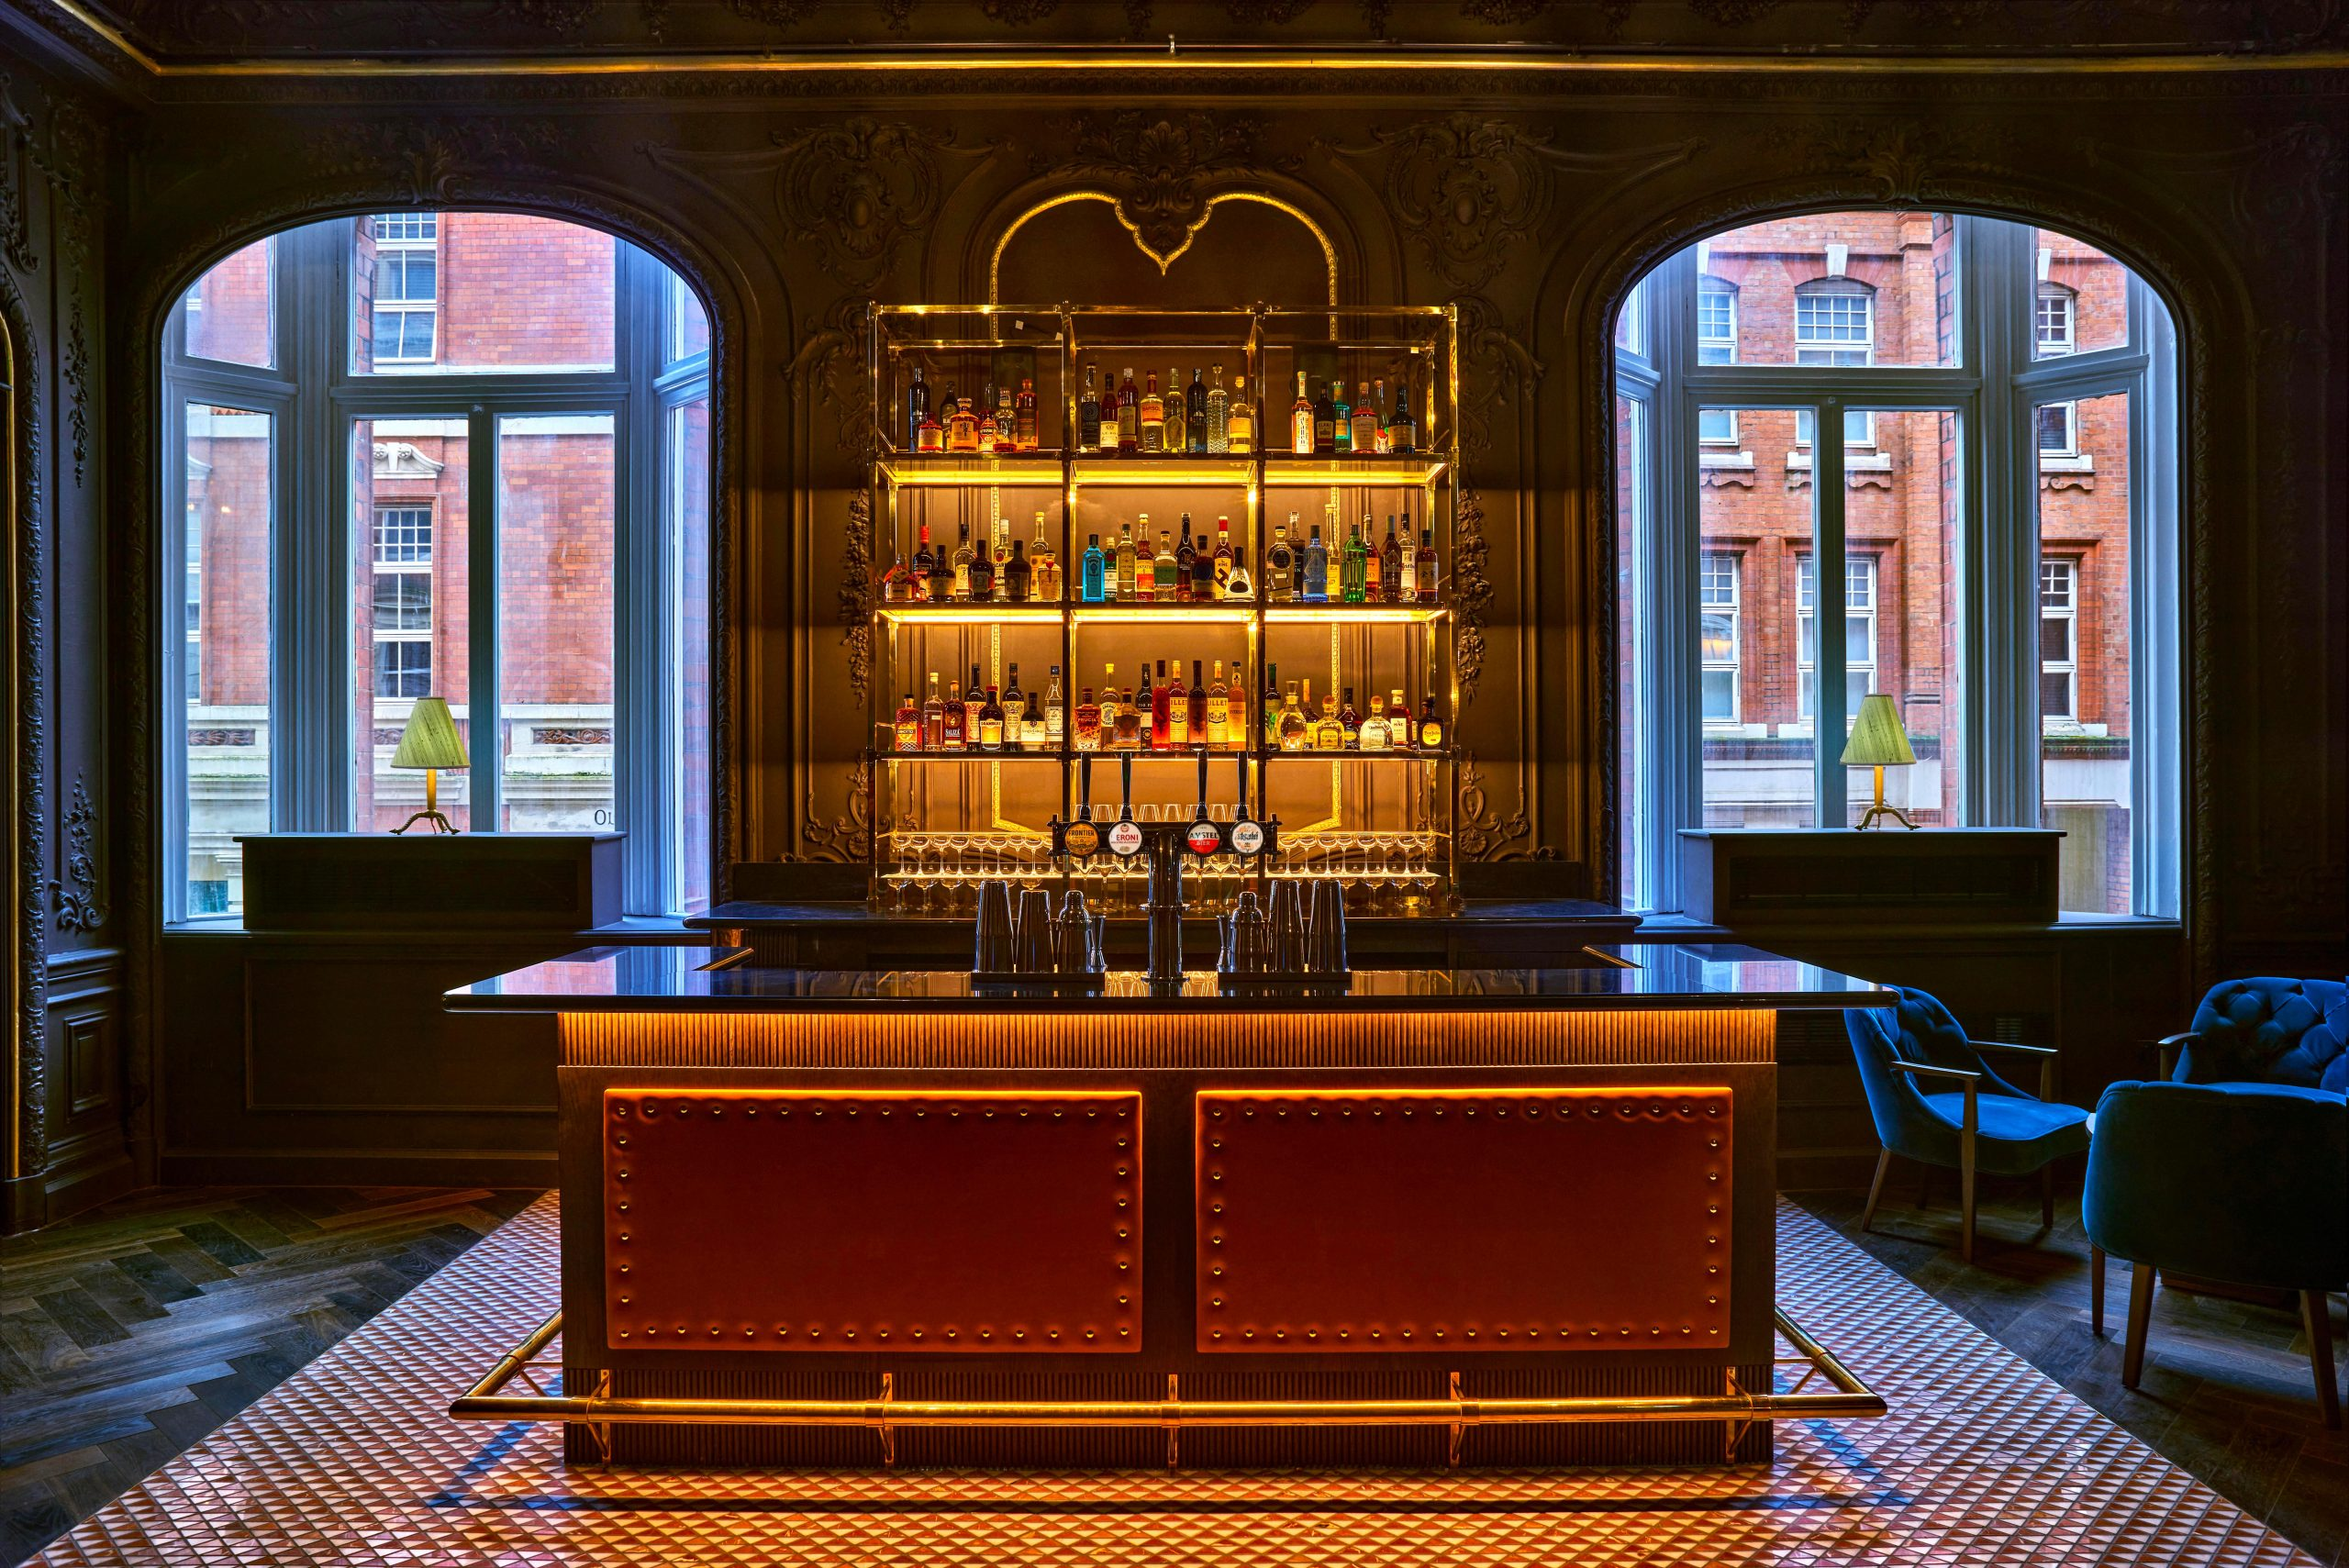 GRAHAM achieves 'stunning transformation' of The Grand Hotel